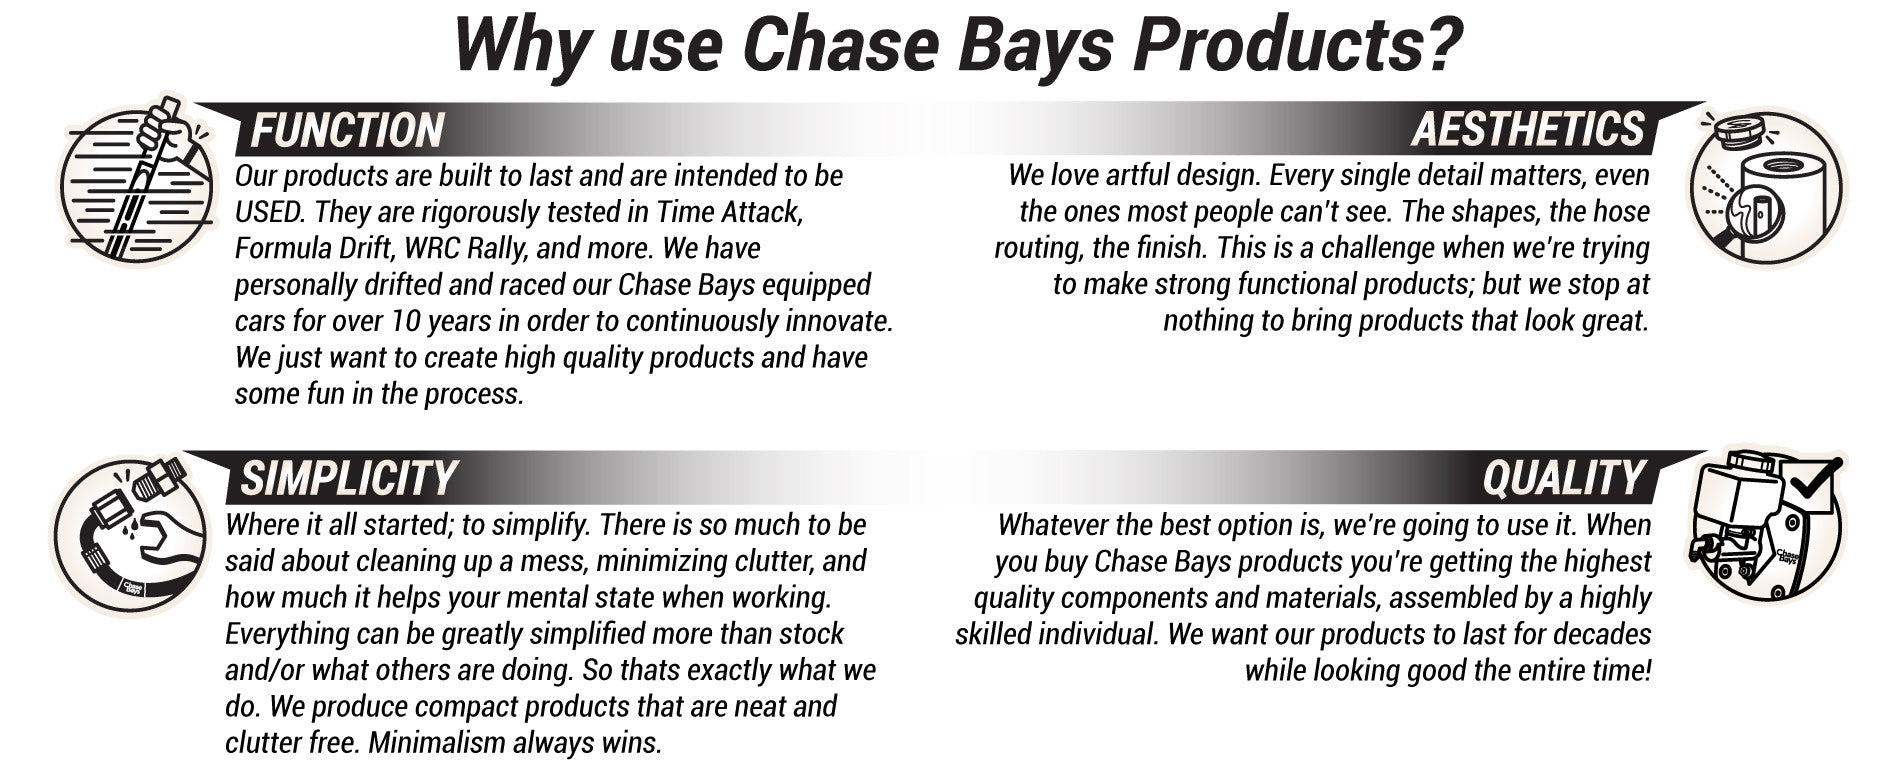 WhyUseConversionBox_d192b4da 1f49 4245 b191 ddd65a2863ae_2000x?v=1498601987 high end fluid transfer products chase bays chase bay wiring harness at crackthecode.co